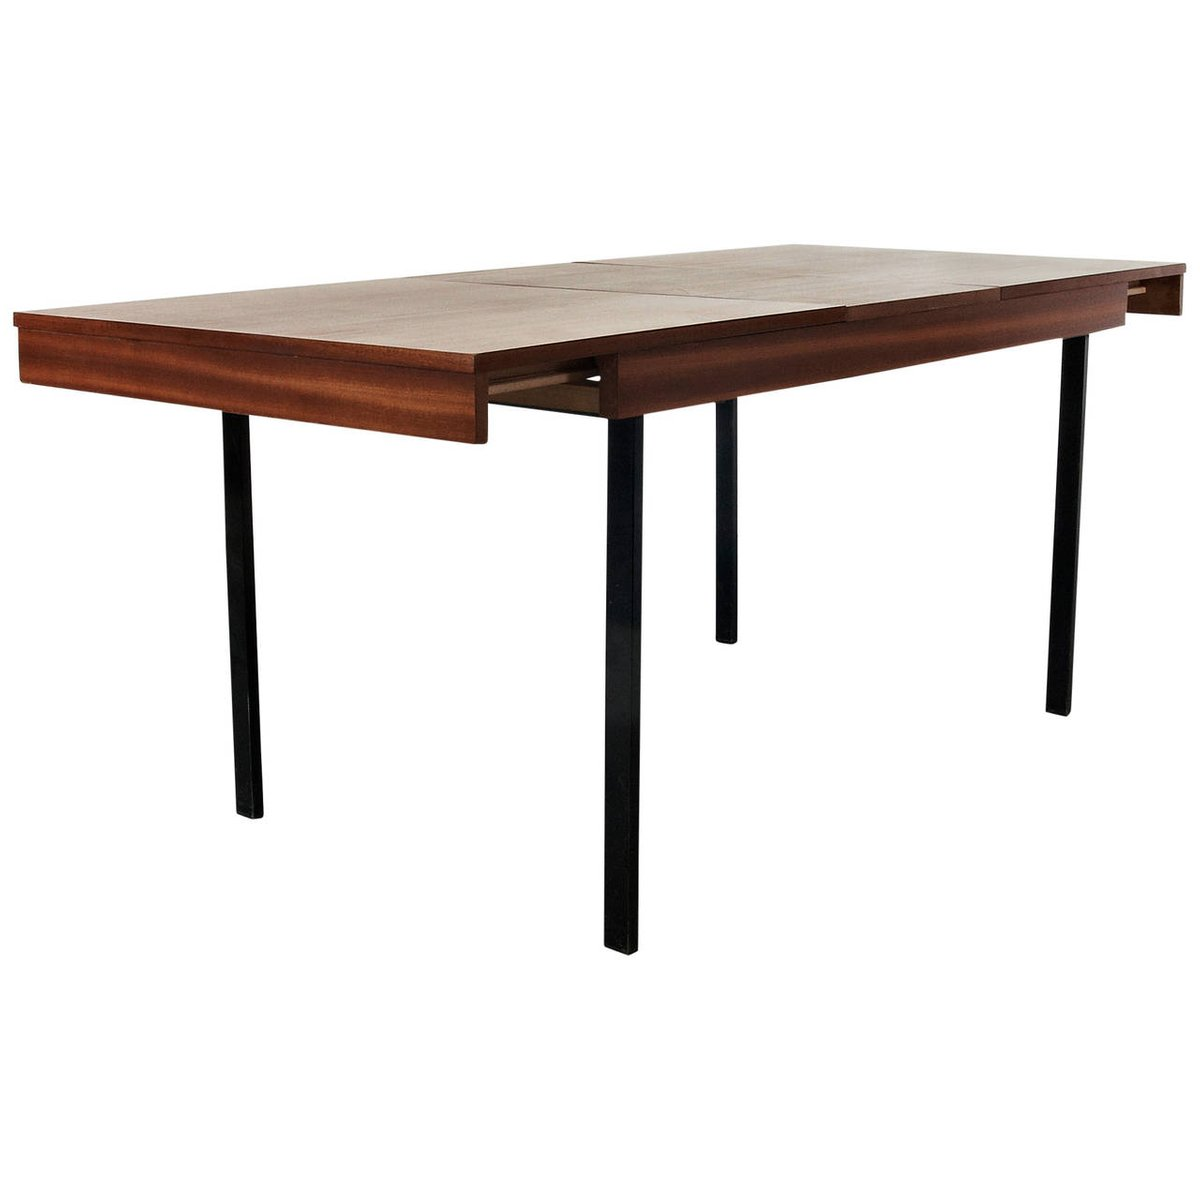 Adjustable extension dining table by pierre guariche for for Extension dining table